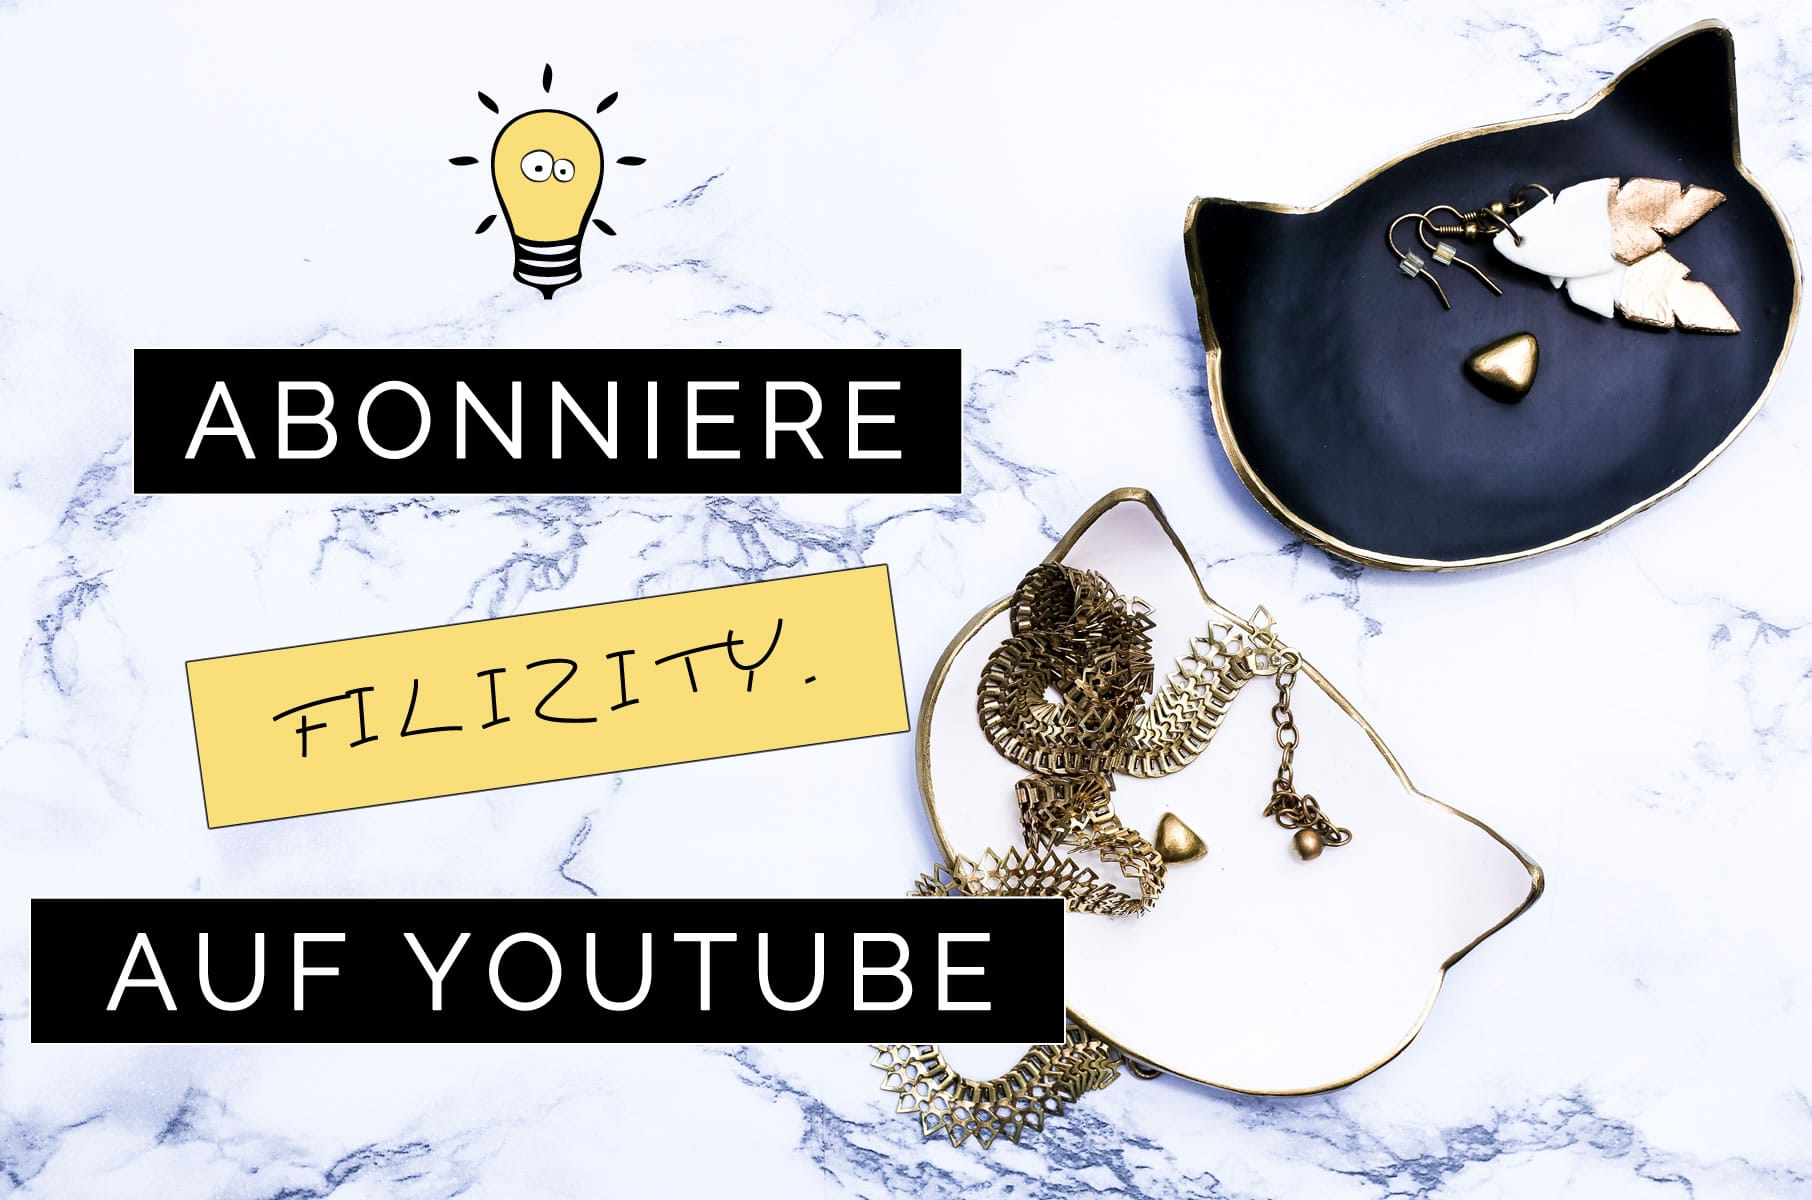 Filizity. auf YouTube | Abonniere meinen YouTube-Channel